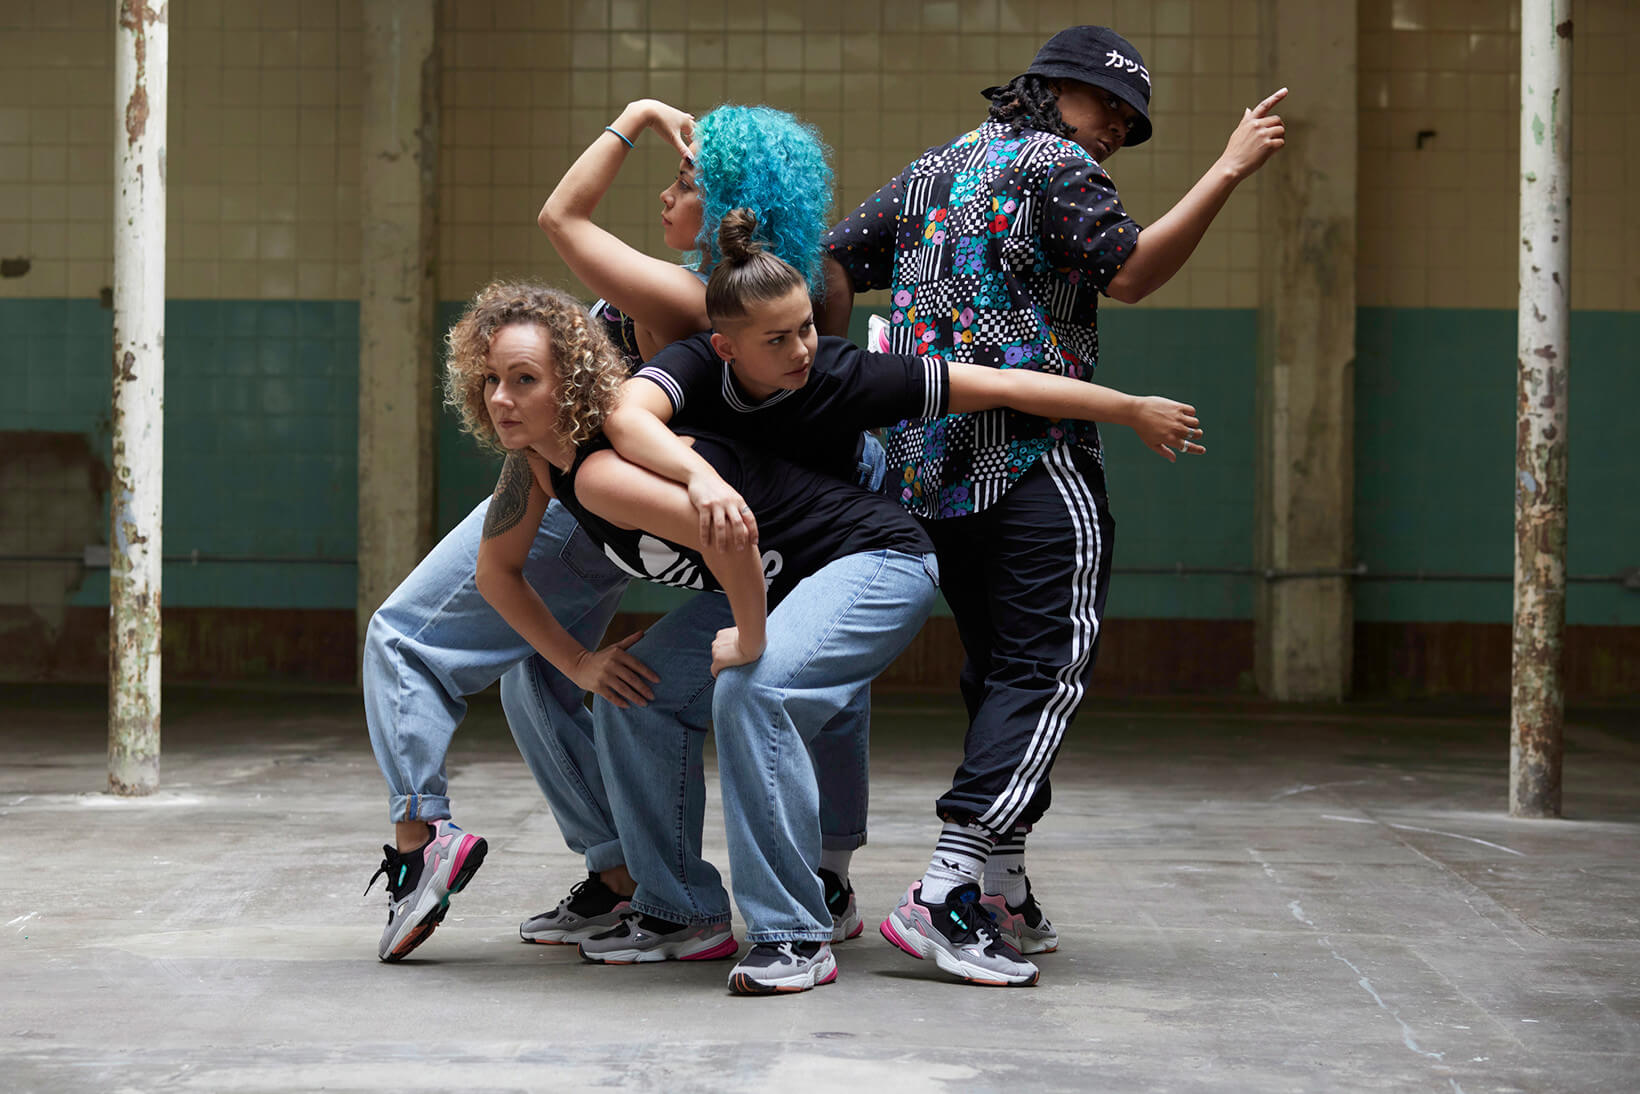 pam pam x adidas Originals: un throwback a los 90 con breakdancing y estilo urbano